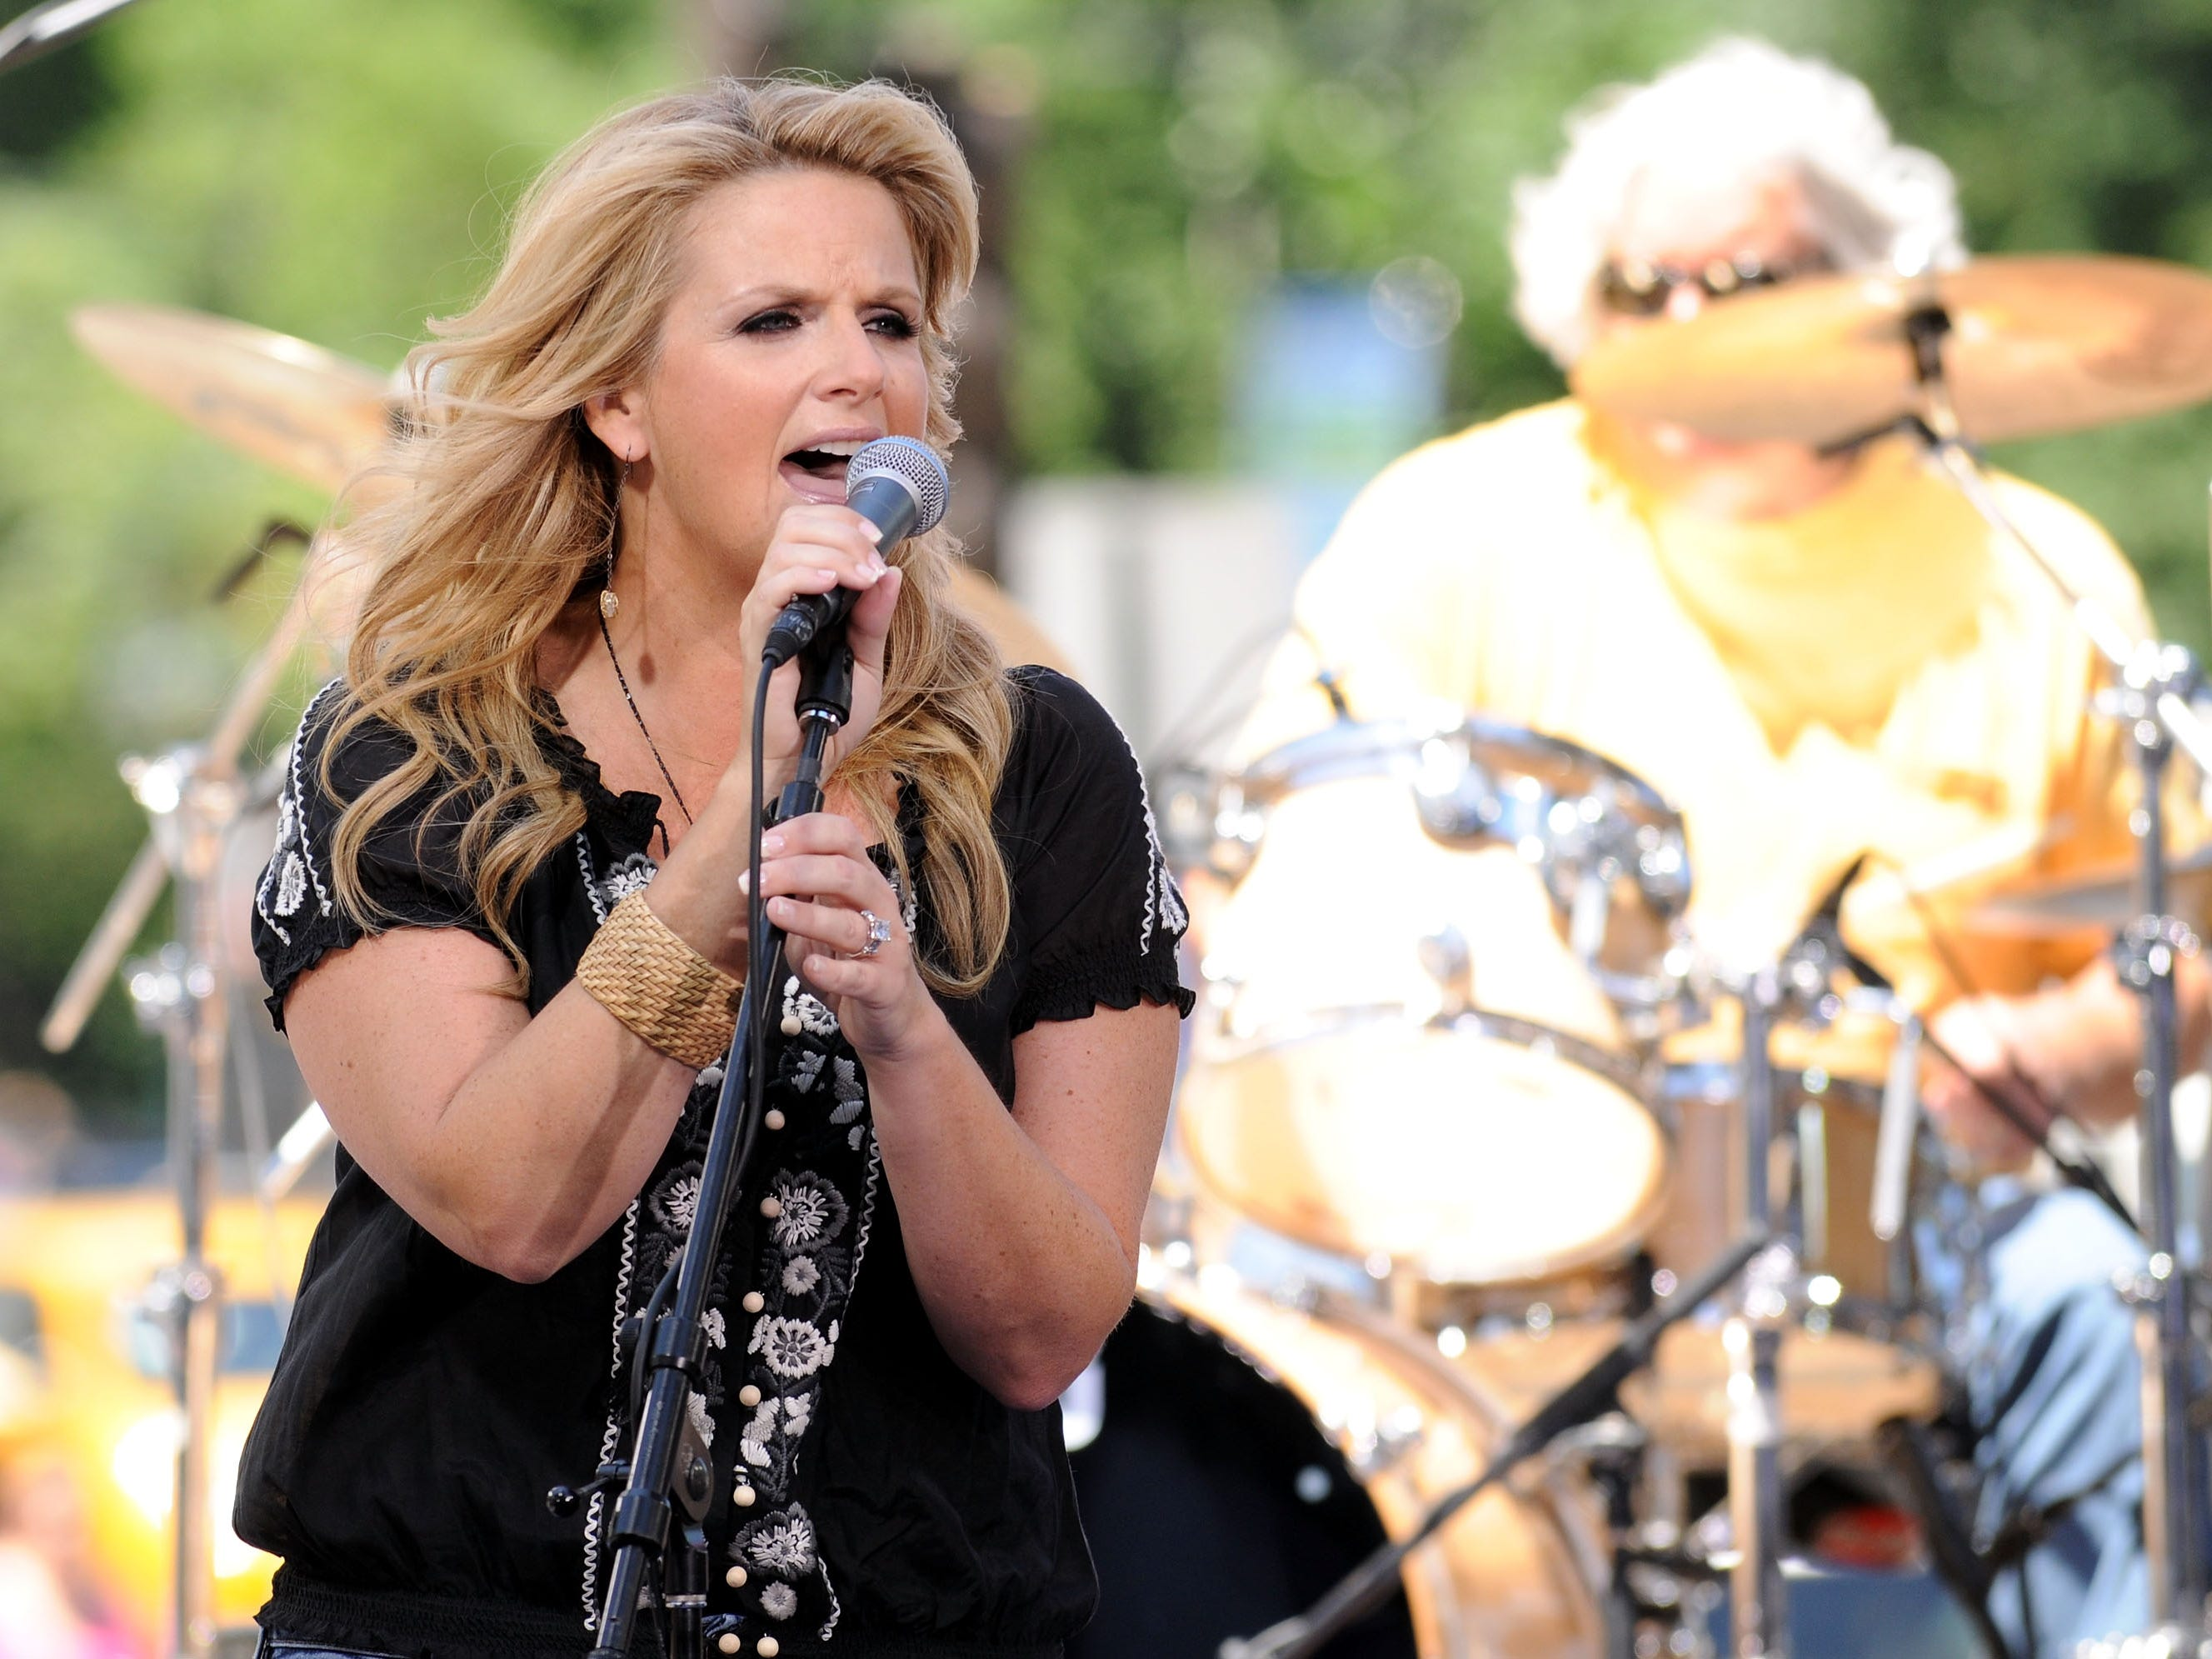 """Trisha Yearwood performs onstage during CBS' """"The Early Show"""" on June 12, 2008 at the CBS Studios Plaza in New York City.  (Photo by Bryan Bedder/Getty Images)"""